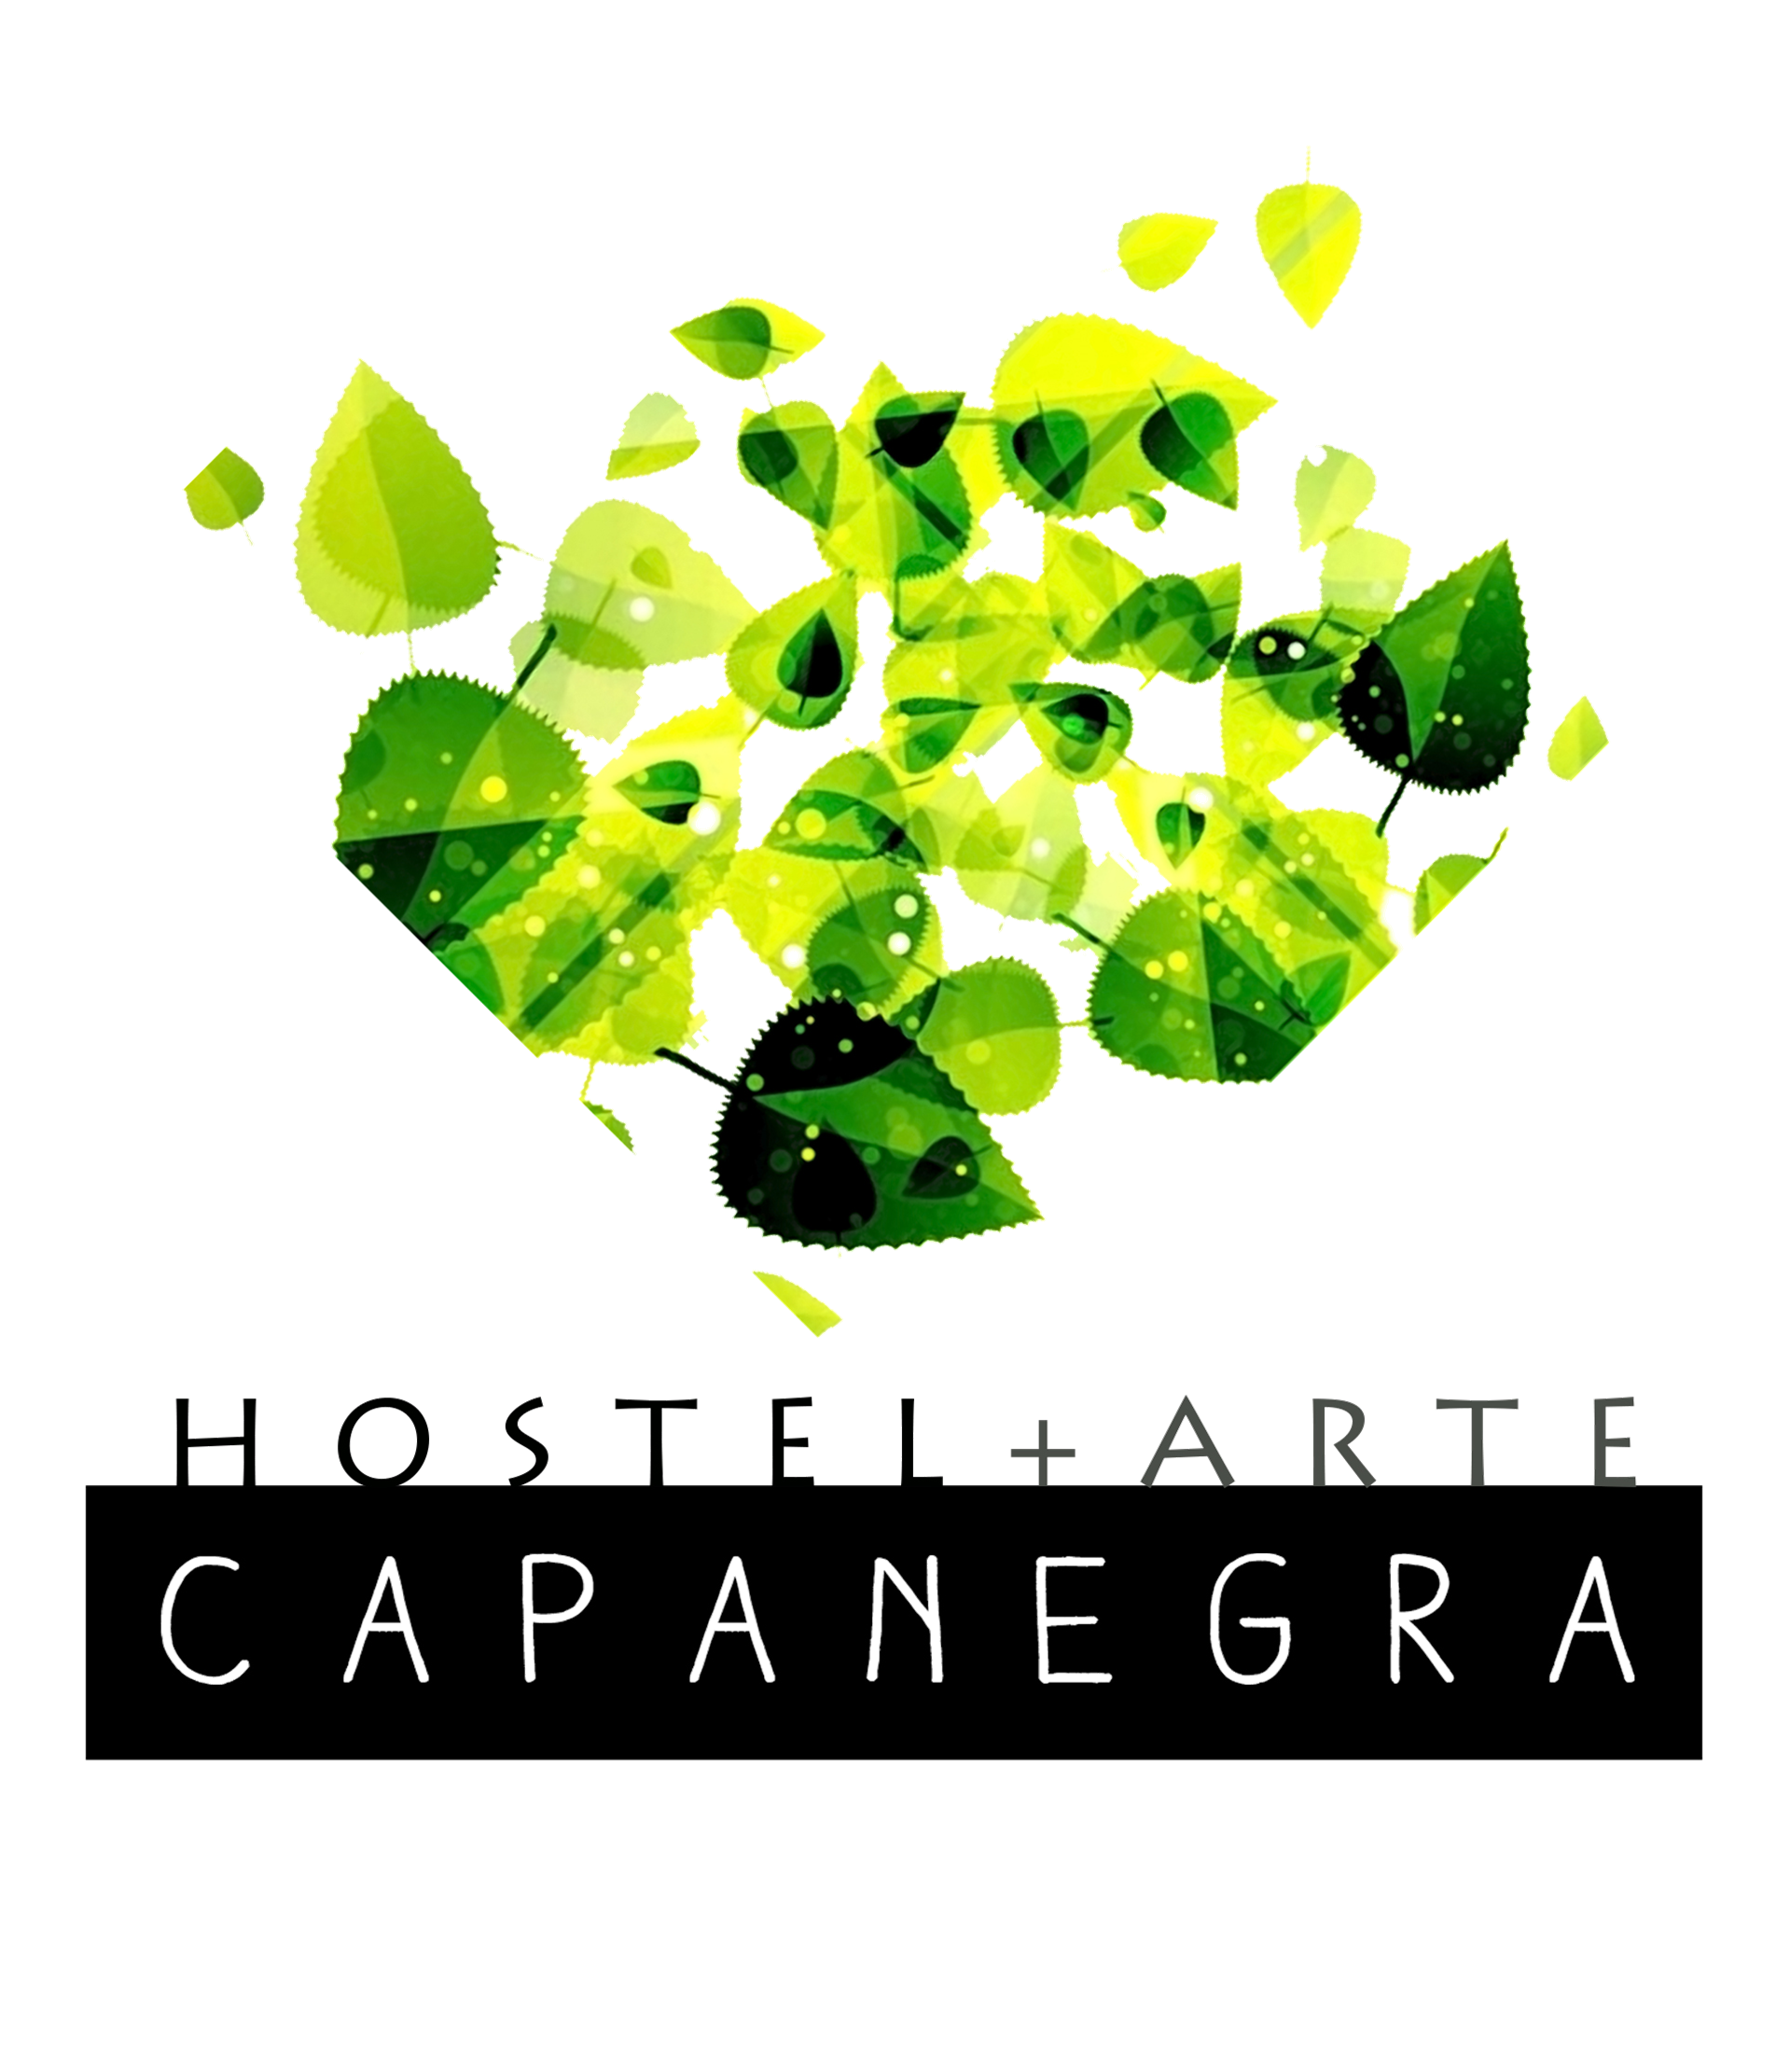 Hostel+Arte Capanegra